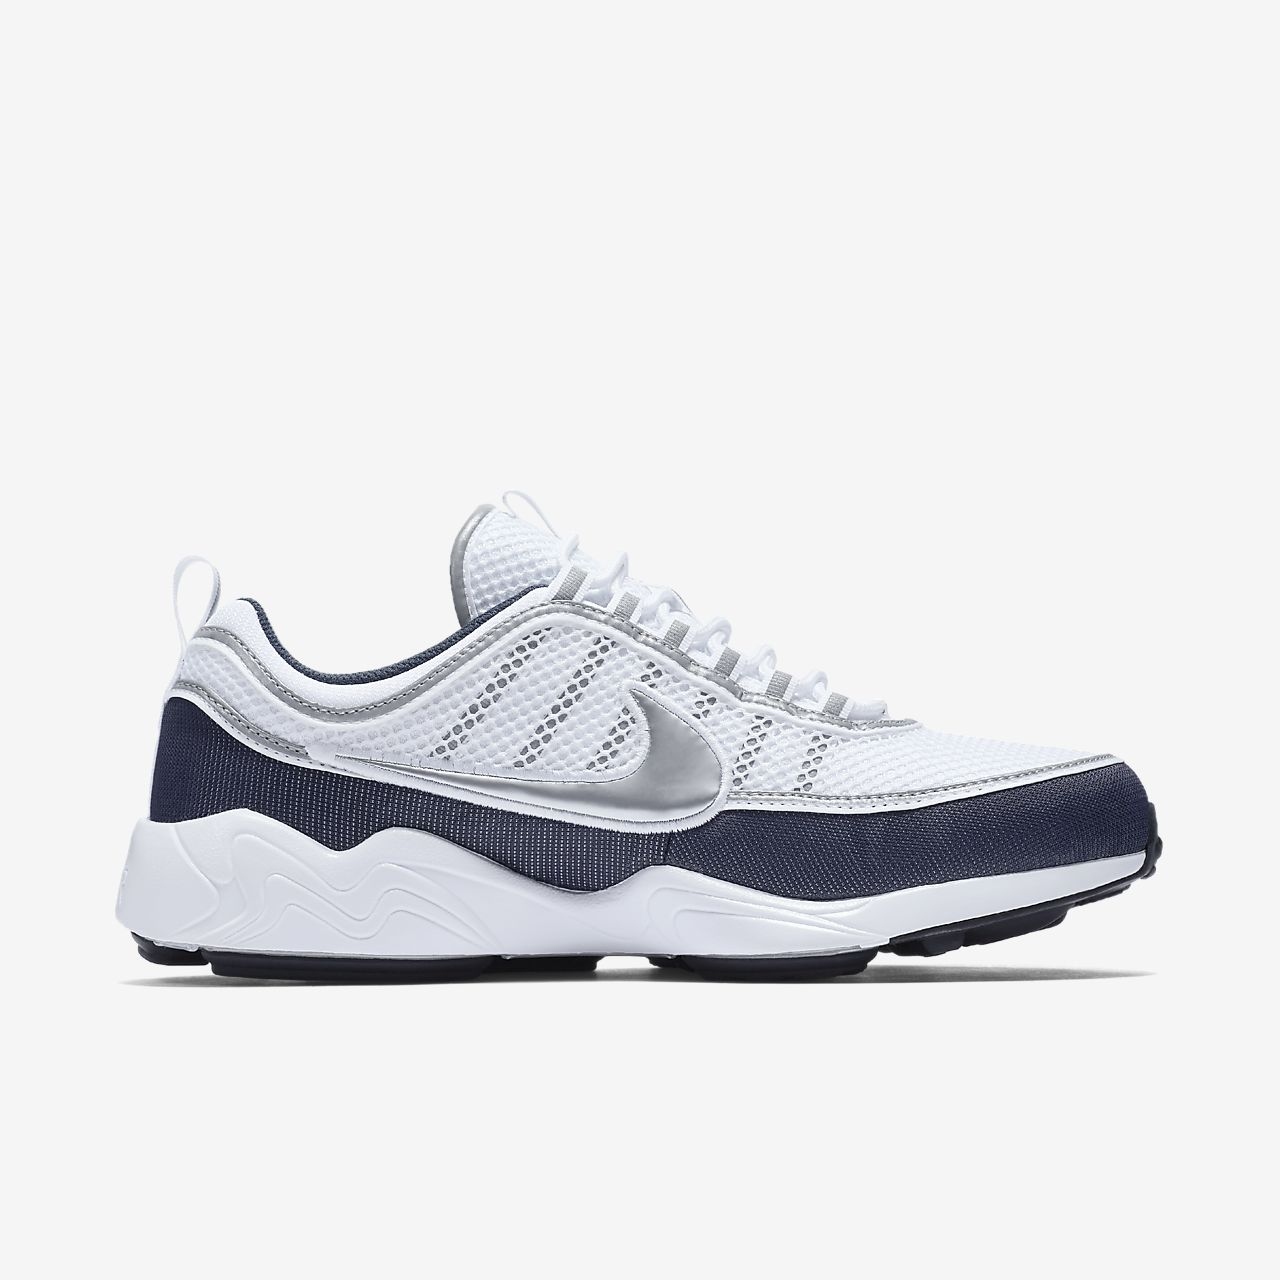 Nike Air Zoom Spiridon 16 Mens Shoe Nike NL